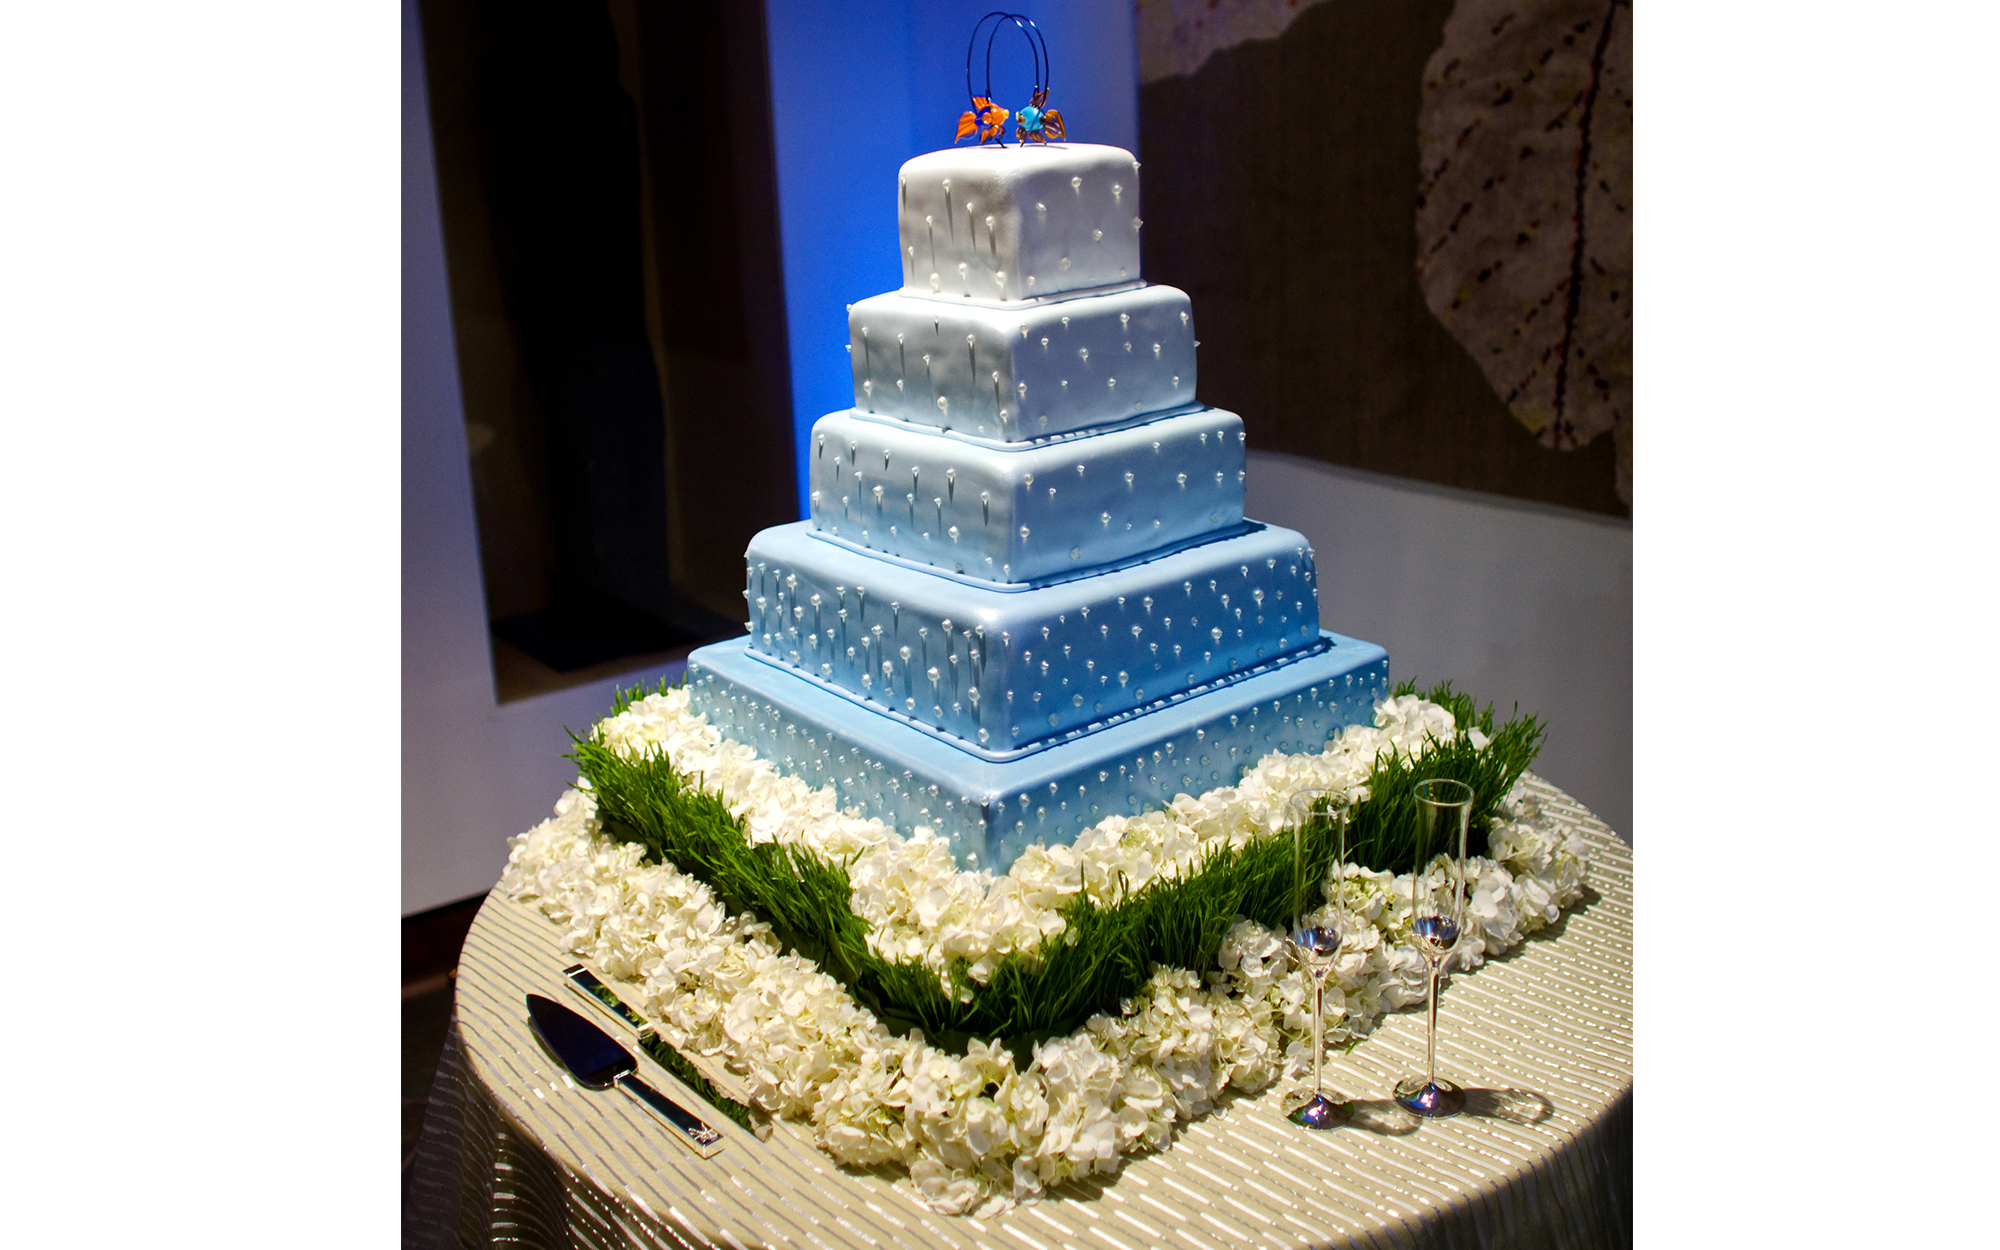 Lighting of Wedding Cake at Dallas World Aquarium